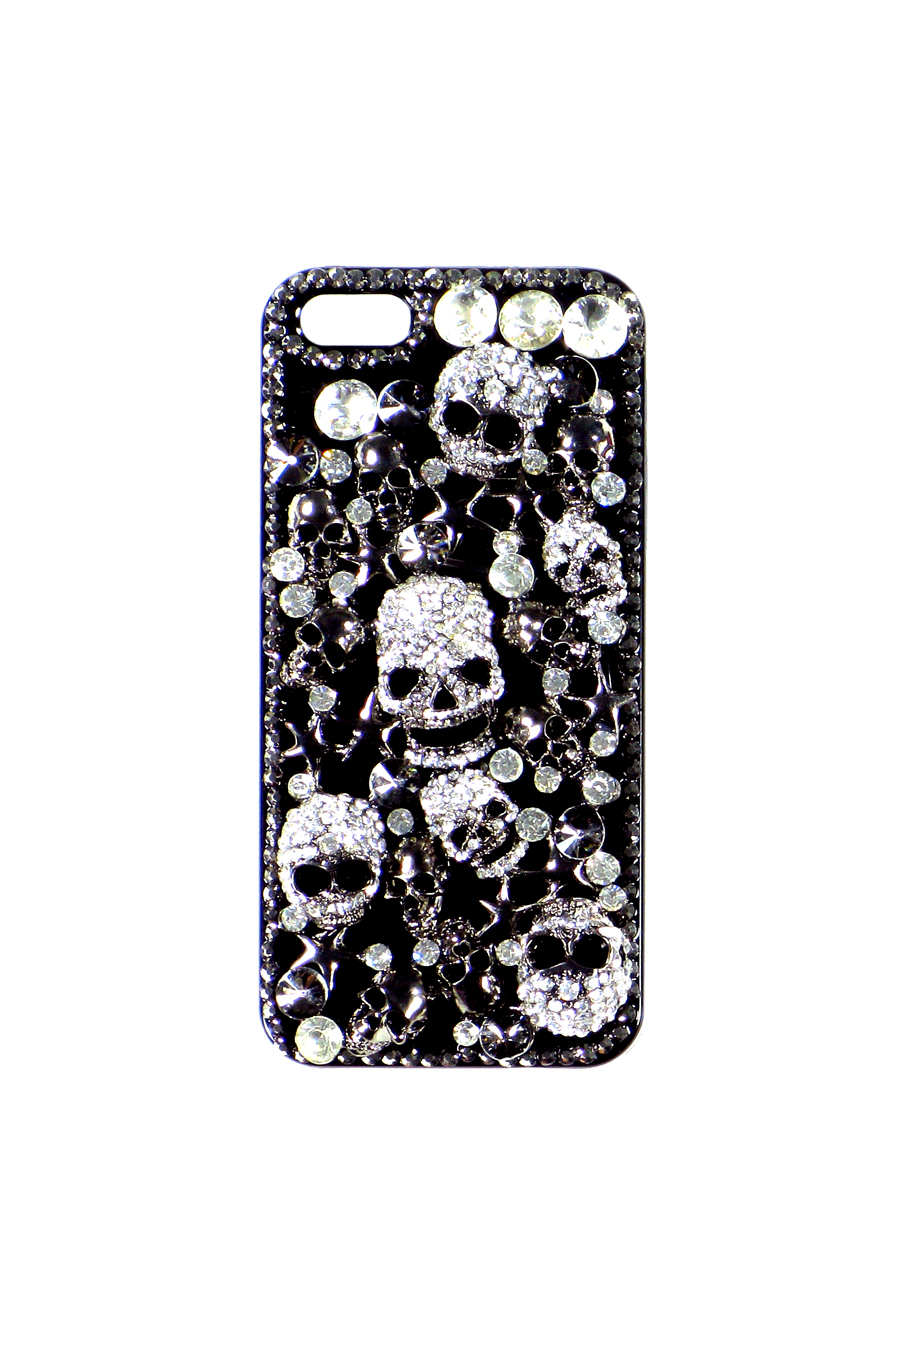 Giveaway: Astrid by Astrid Bryan Jeweled iPhone Cover